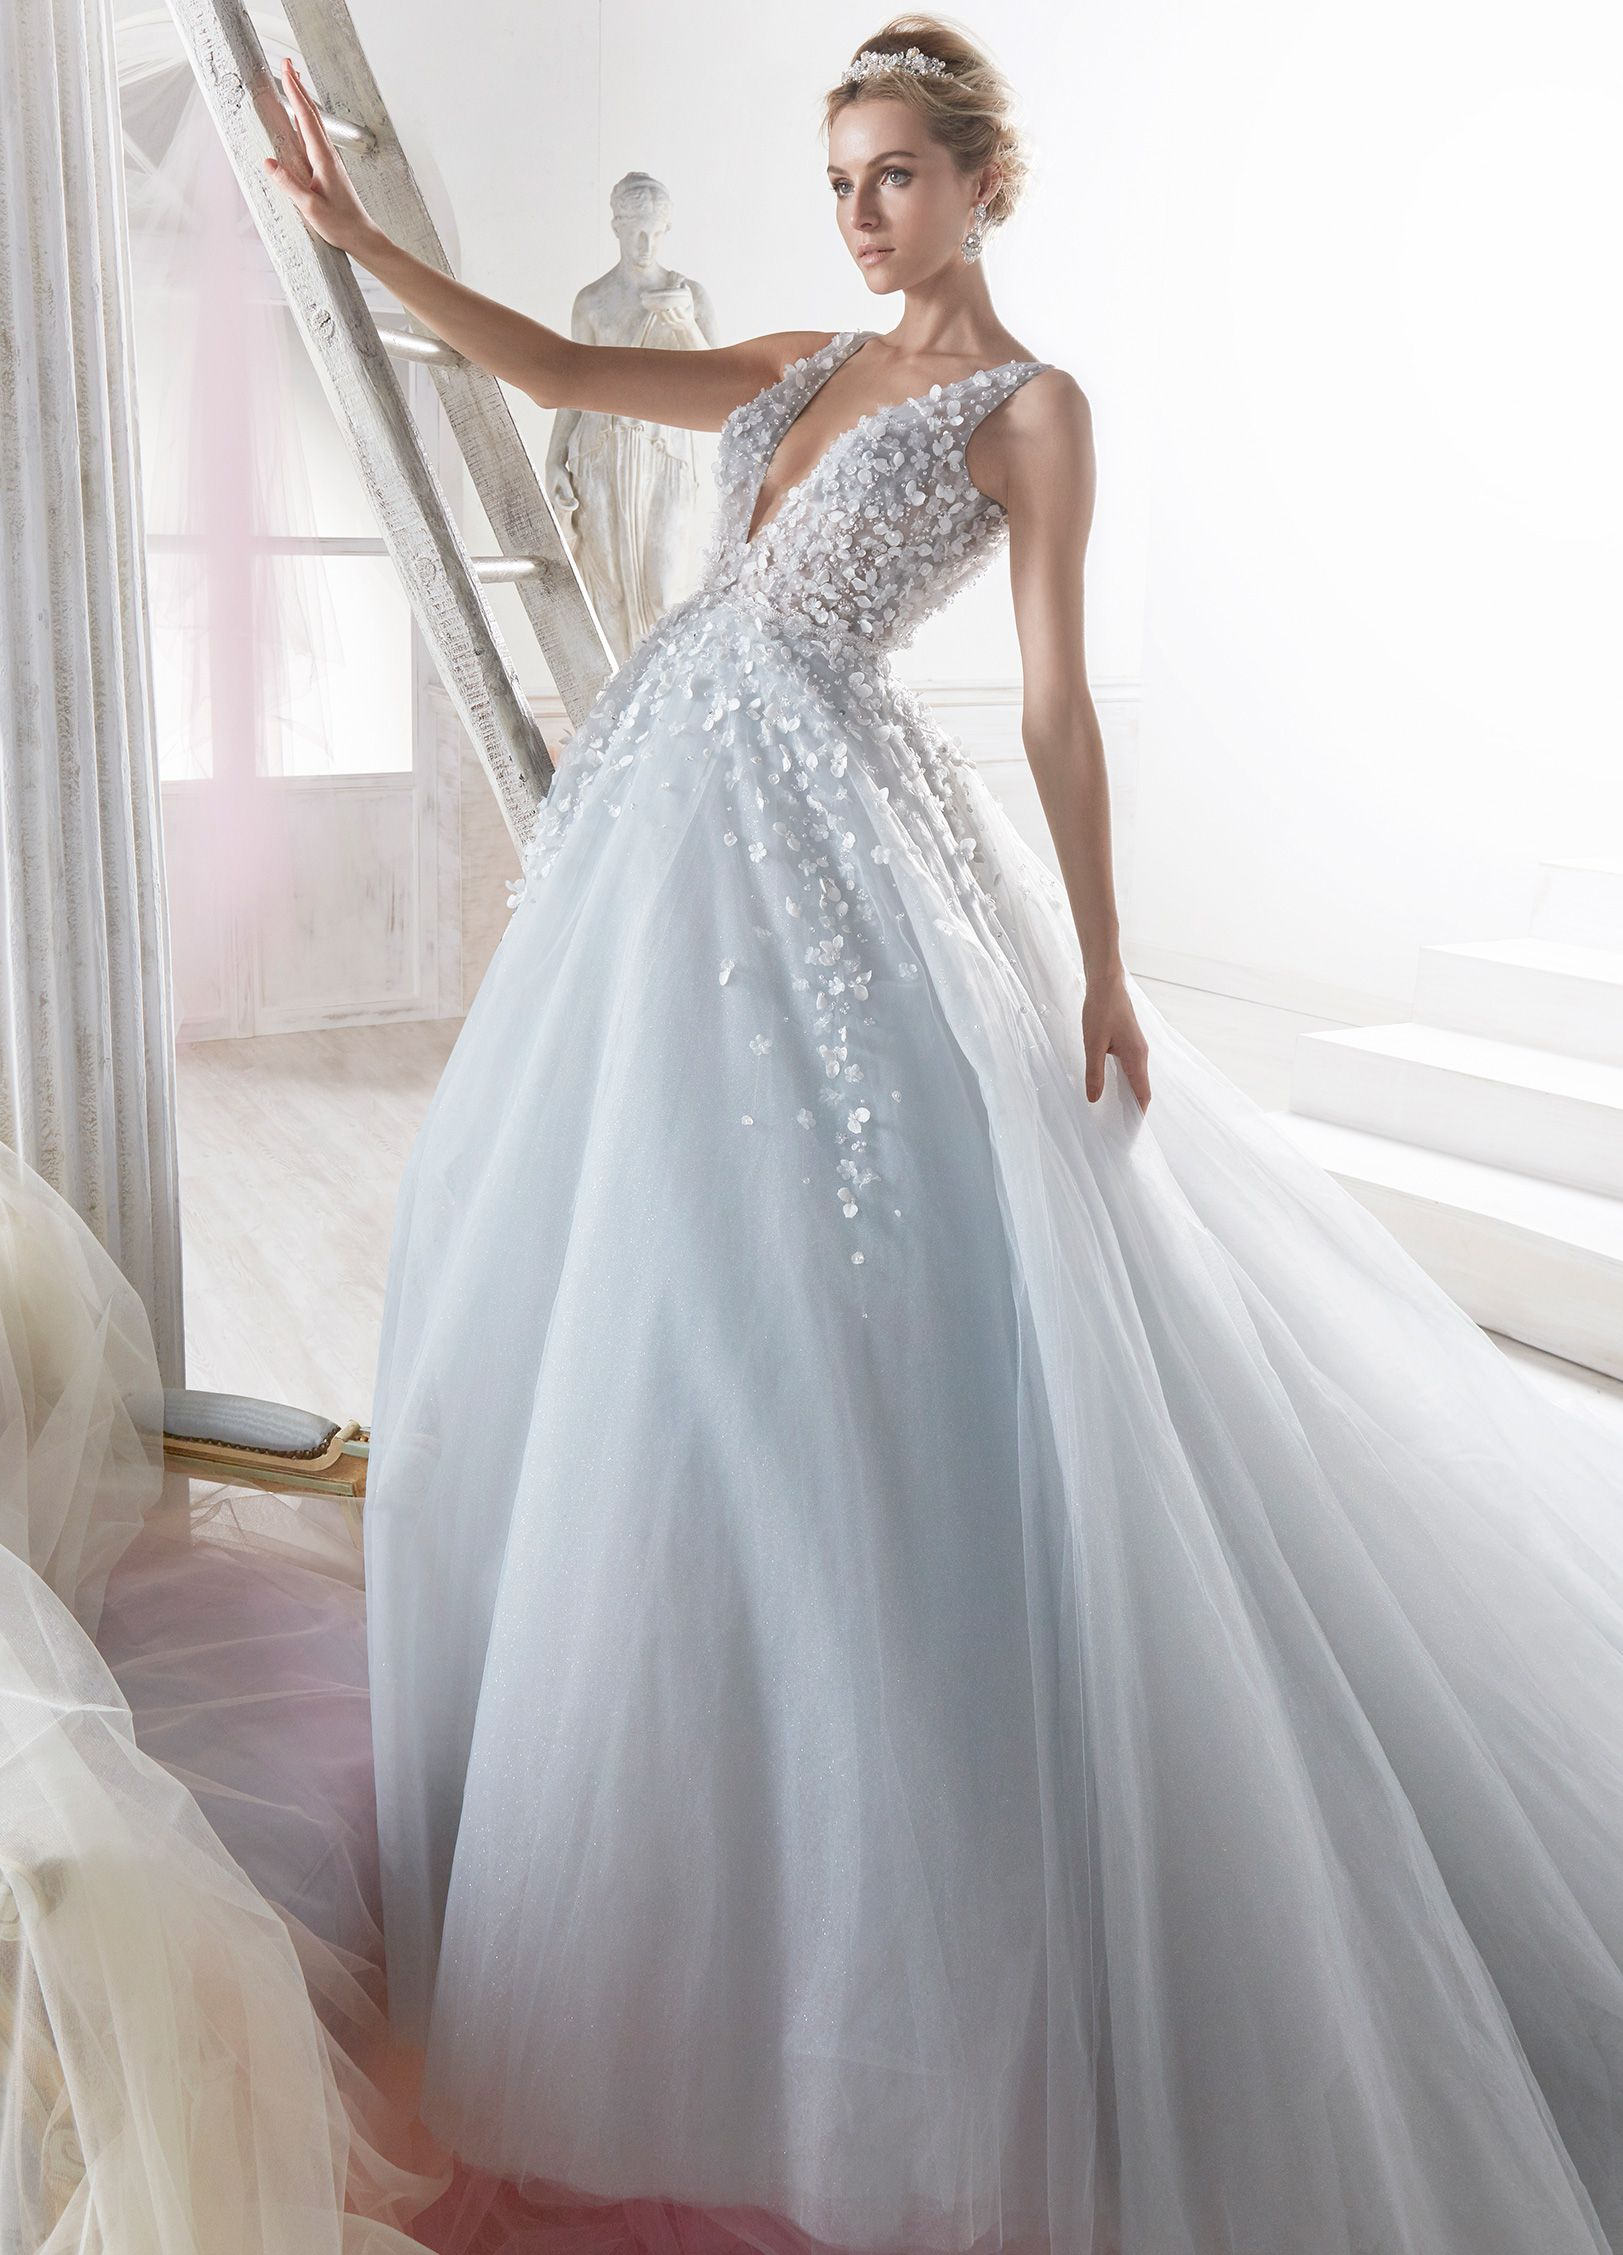 Nicole majestic light blue princess dress in tulle and glitter tulle ...